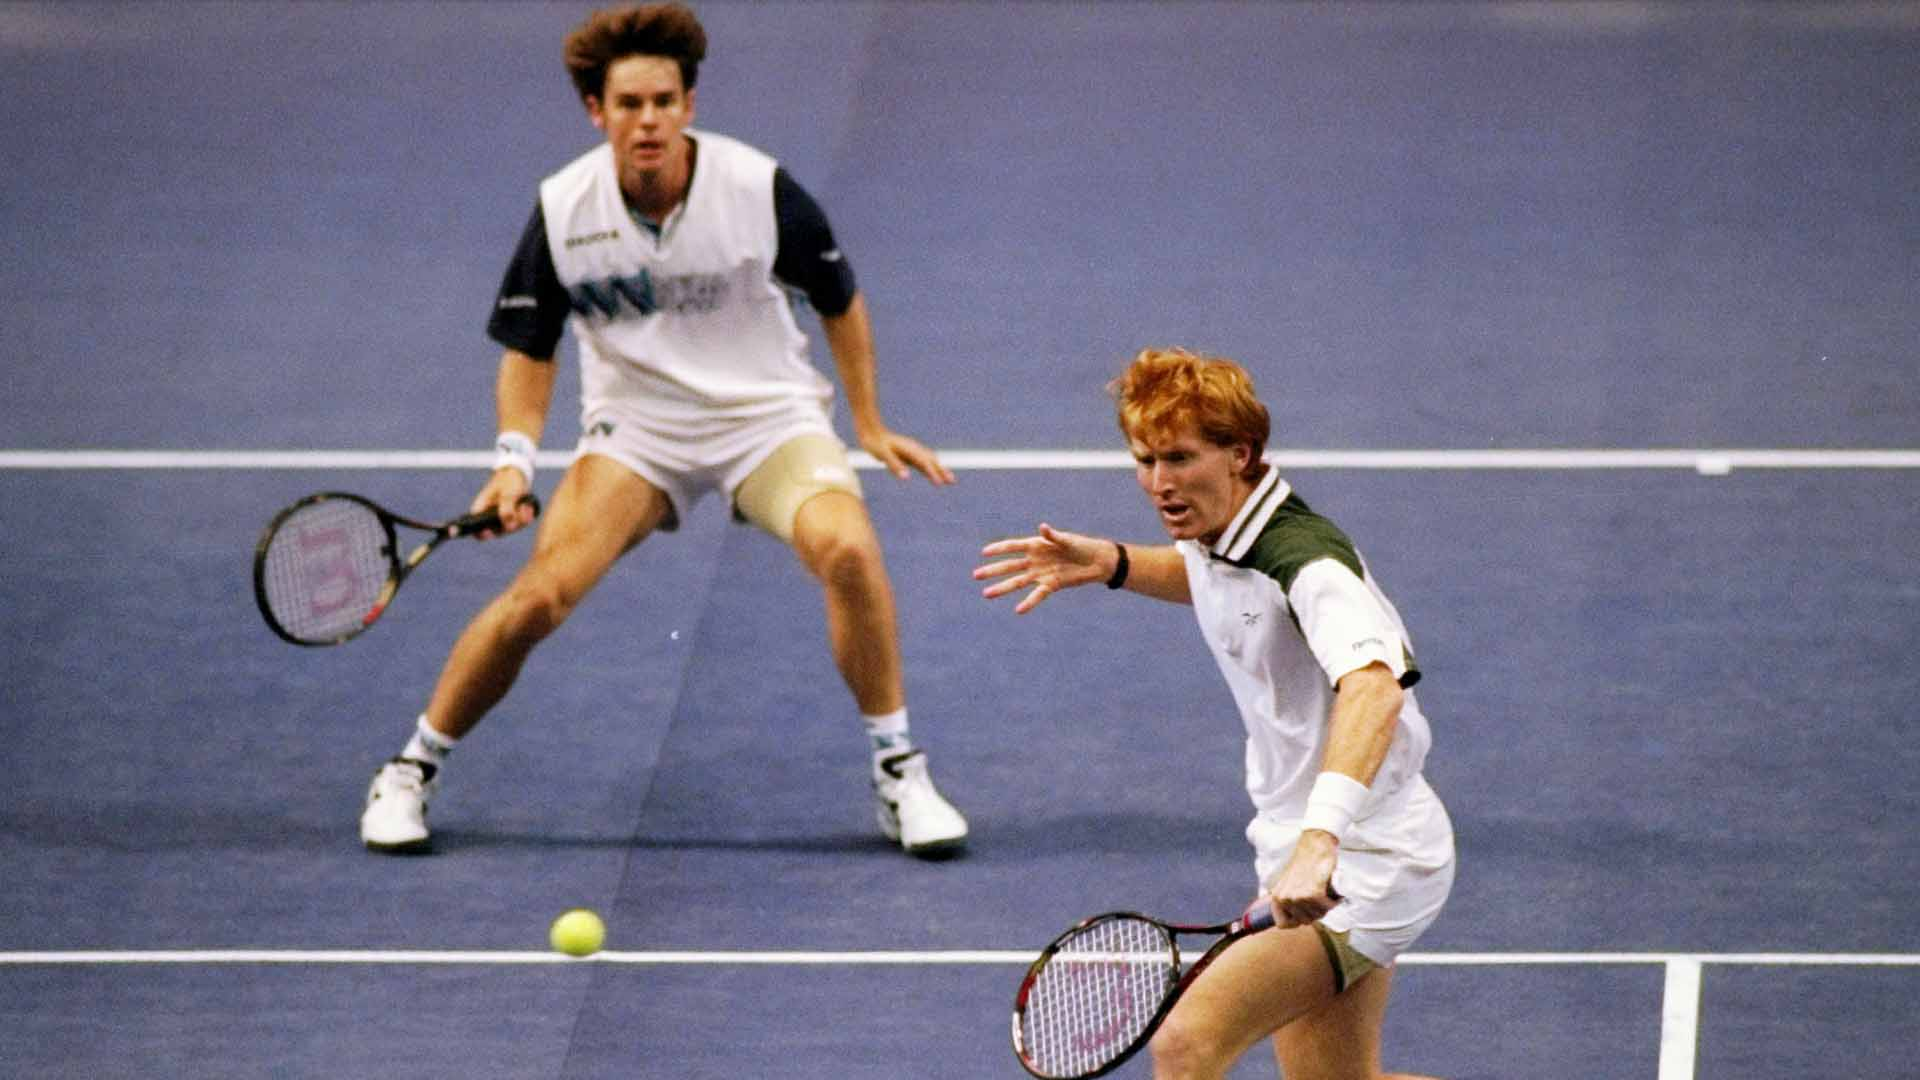 <a href='/en/players/todd-woodbridge/w136/overview'>Todd Woodbridge</a> and <a href='/en/players/mark-woodforde/w035/overview'>Mark Woodforde</a> claimed the <a href='/en/tournaments/nitto-atp-finals/605/overview'>Nitto ATP Finals</a> trophy in 1992 and 1996.